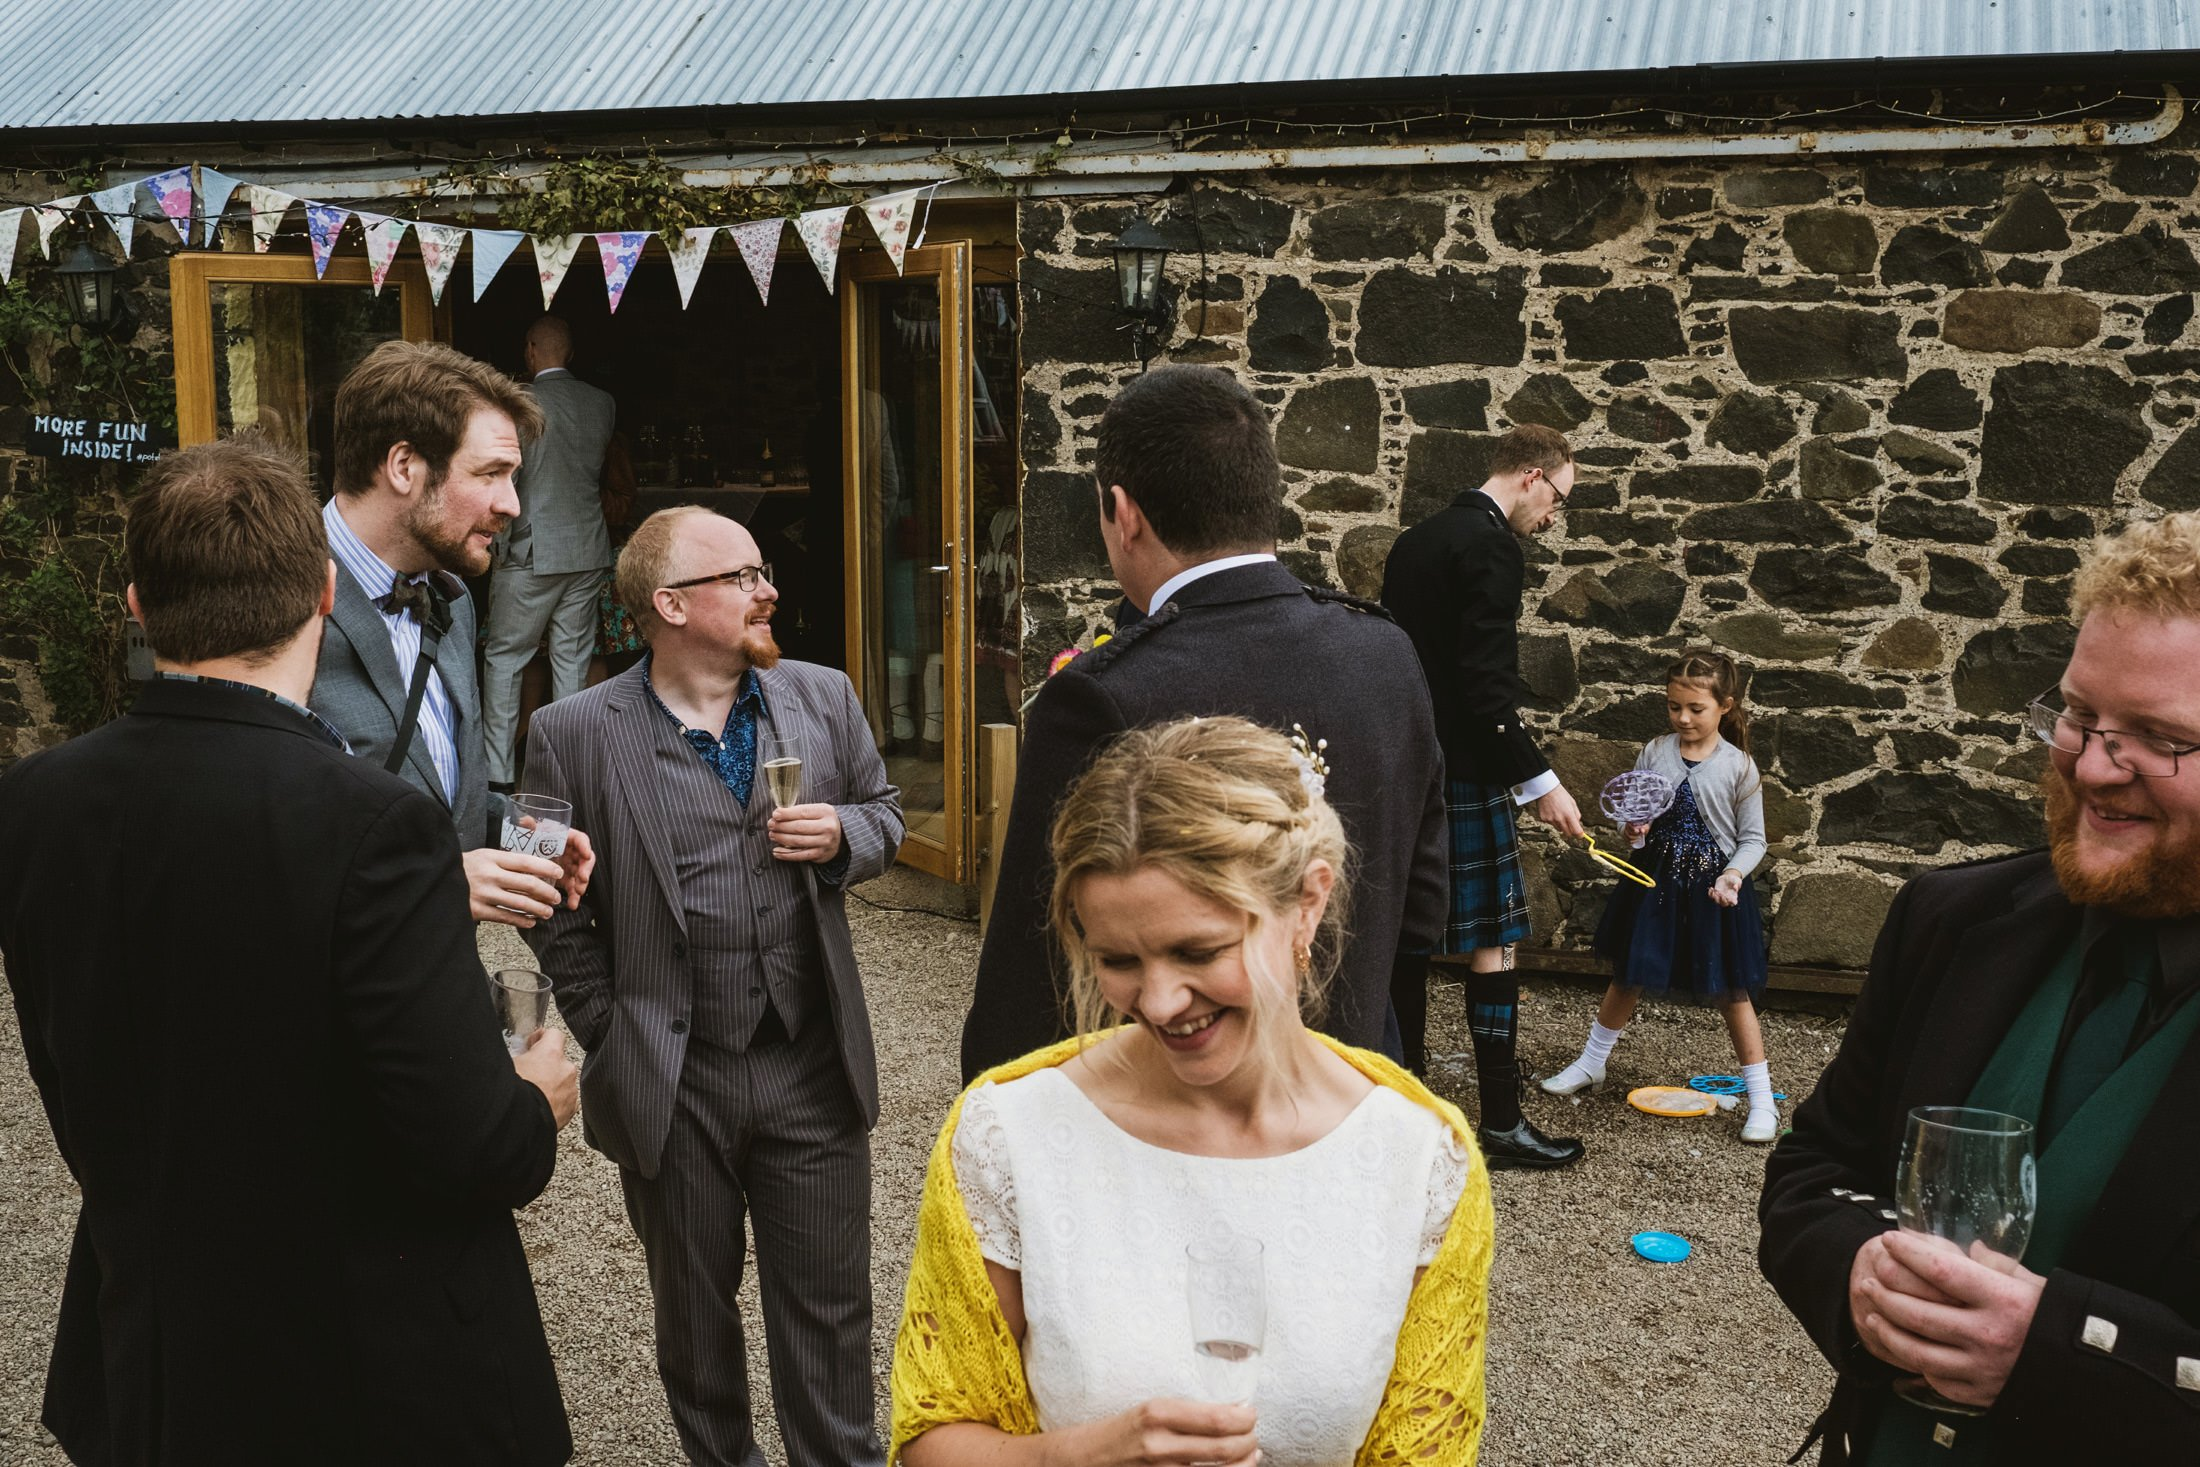 Comrie Croft Wedding Photography. Bride in the centre of the frame surrounded by guests at her wedding reception at Comrie Croft